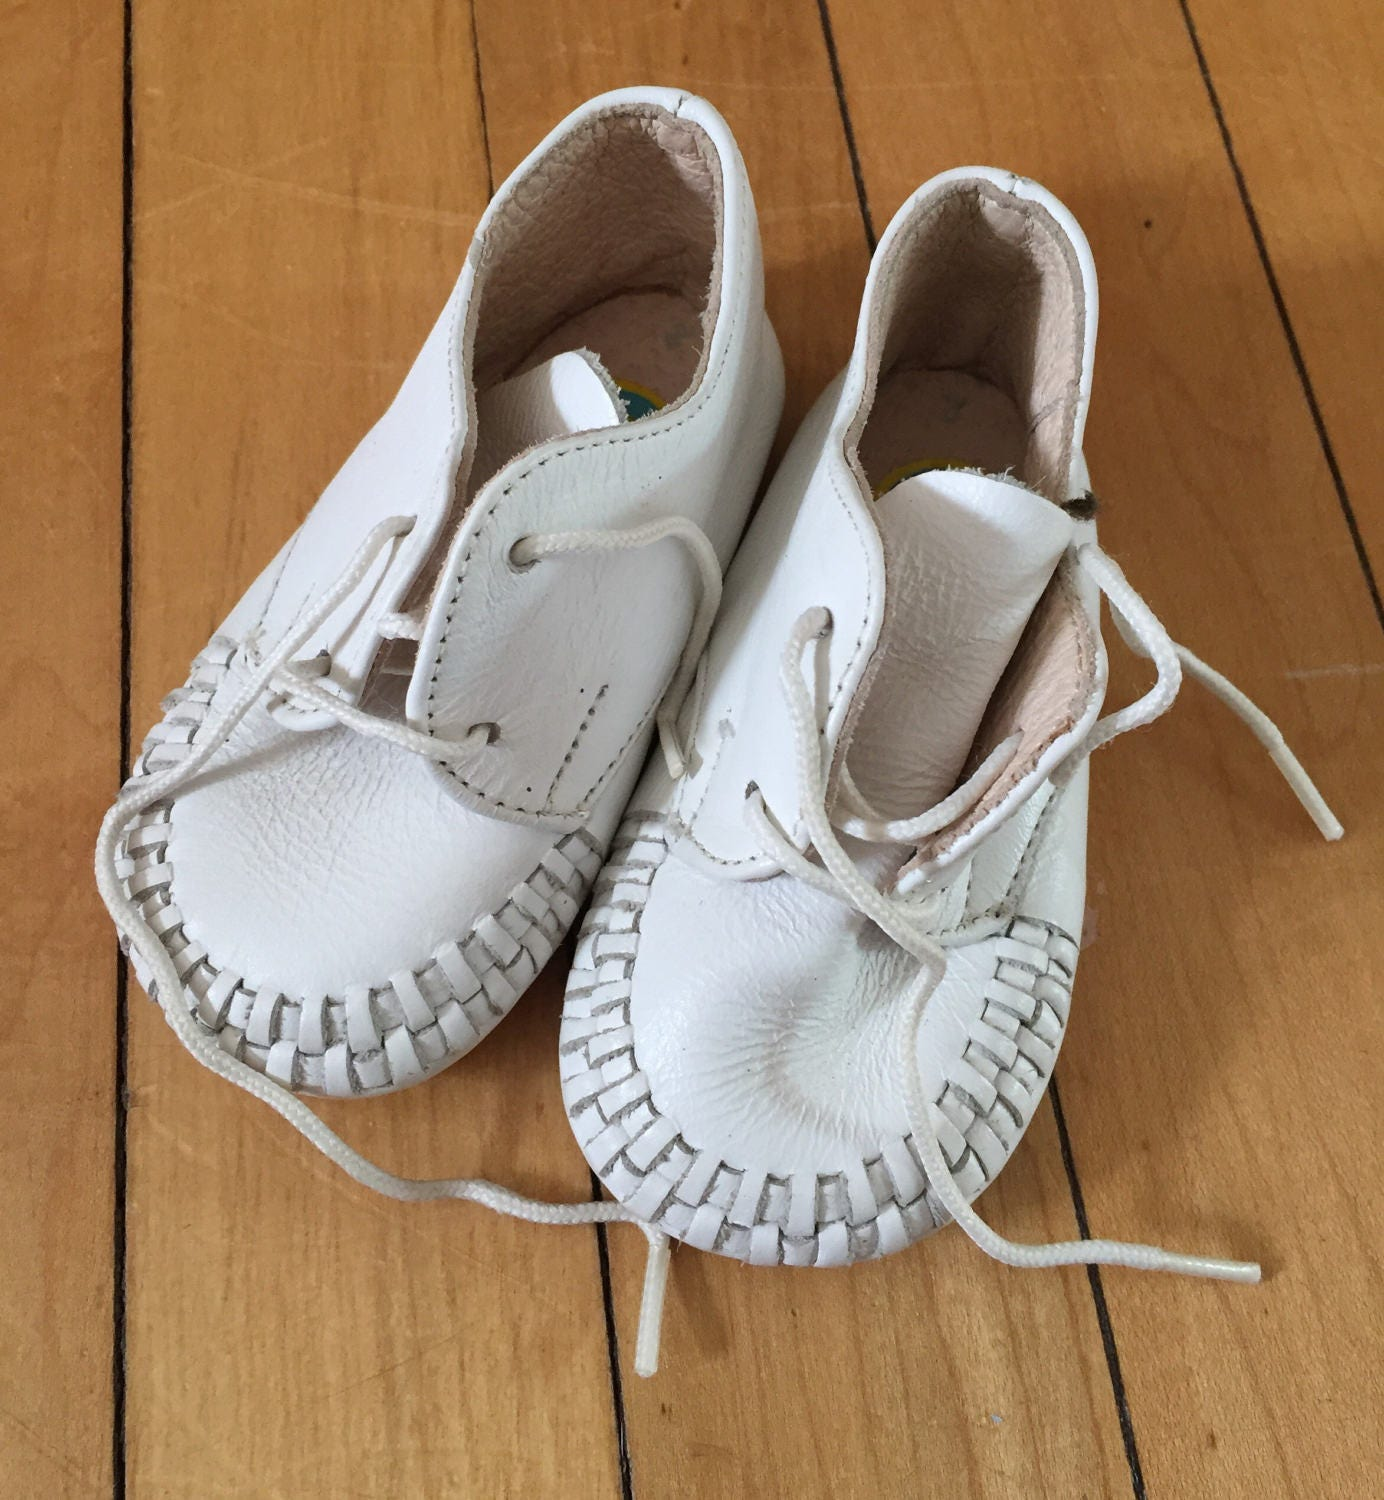 Vintage 1980s Baby Infant White Leather Walking Shoes Size